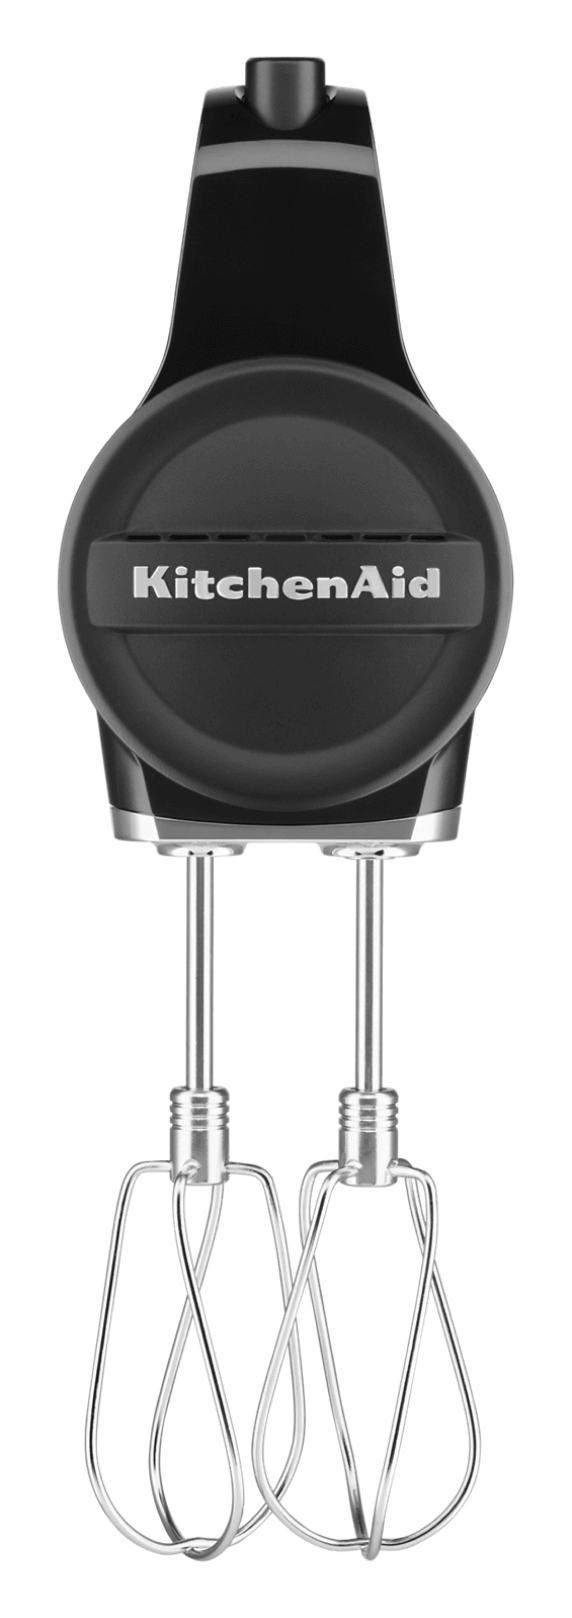 KitchenAid Black Matte Cordless Hand Mixer.